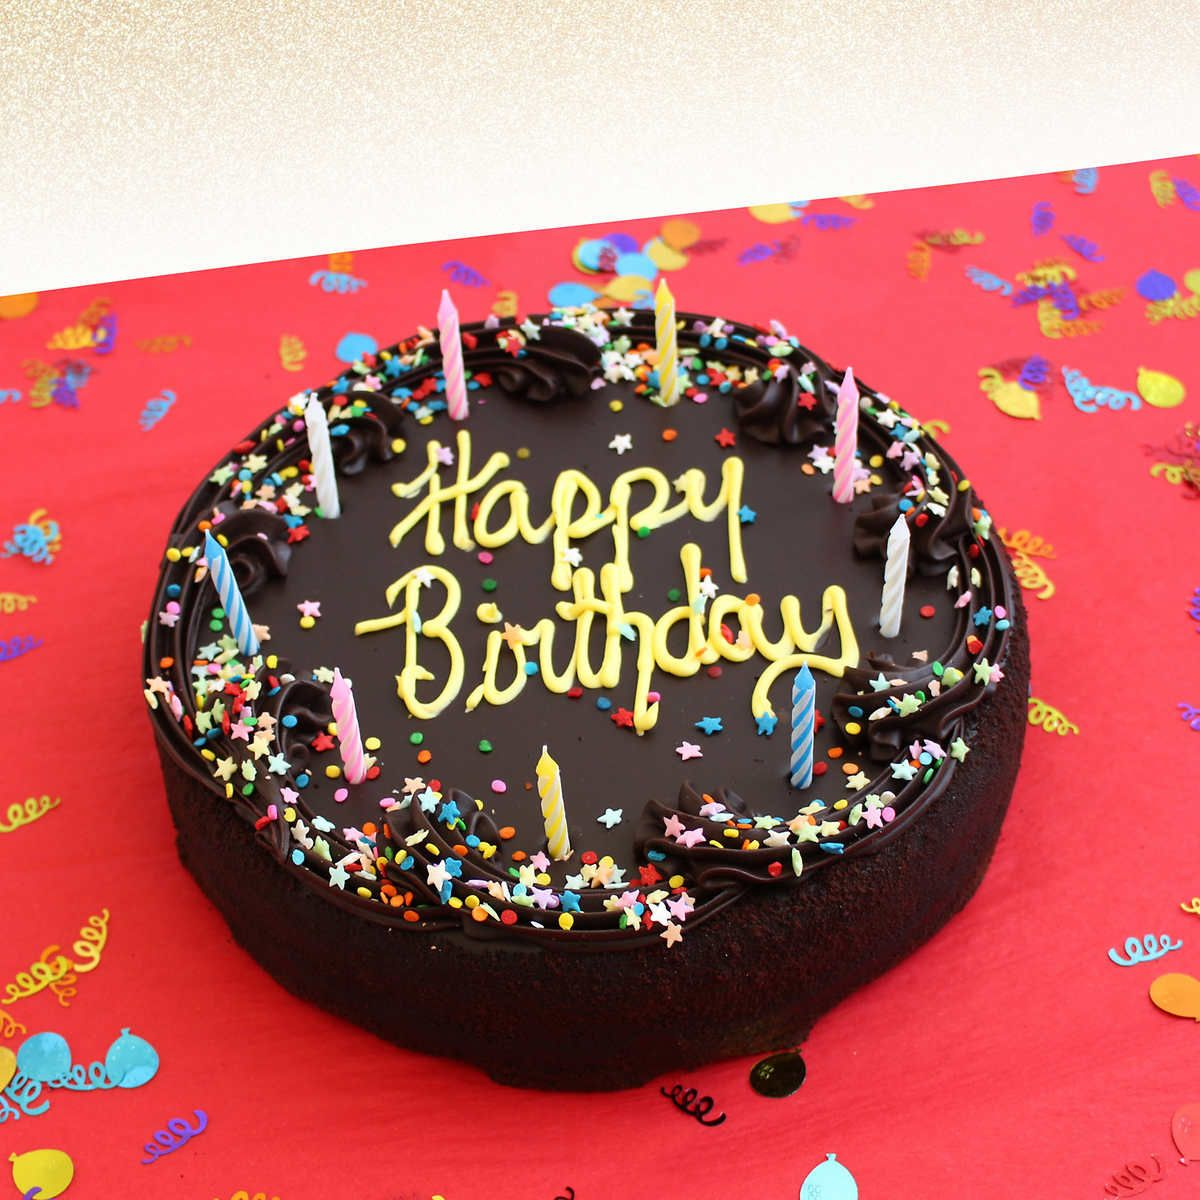 Terrific Send Happy Birthday Cake For Your Mother Father Sister Brother Funny Birthday Cards Online Inifodamsfinfo